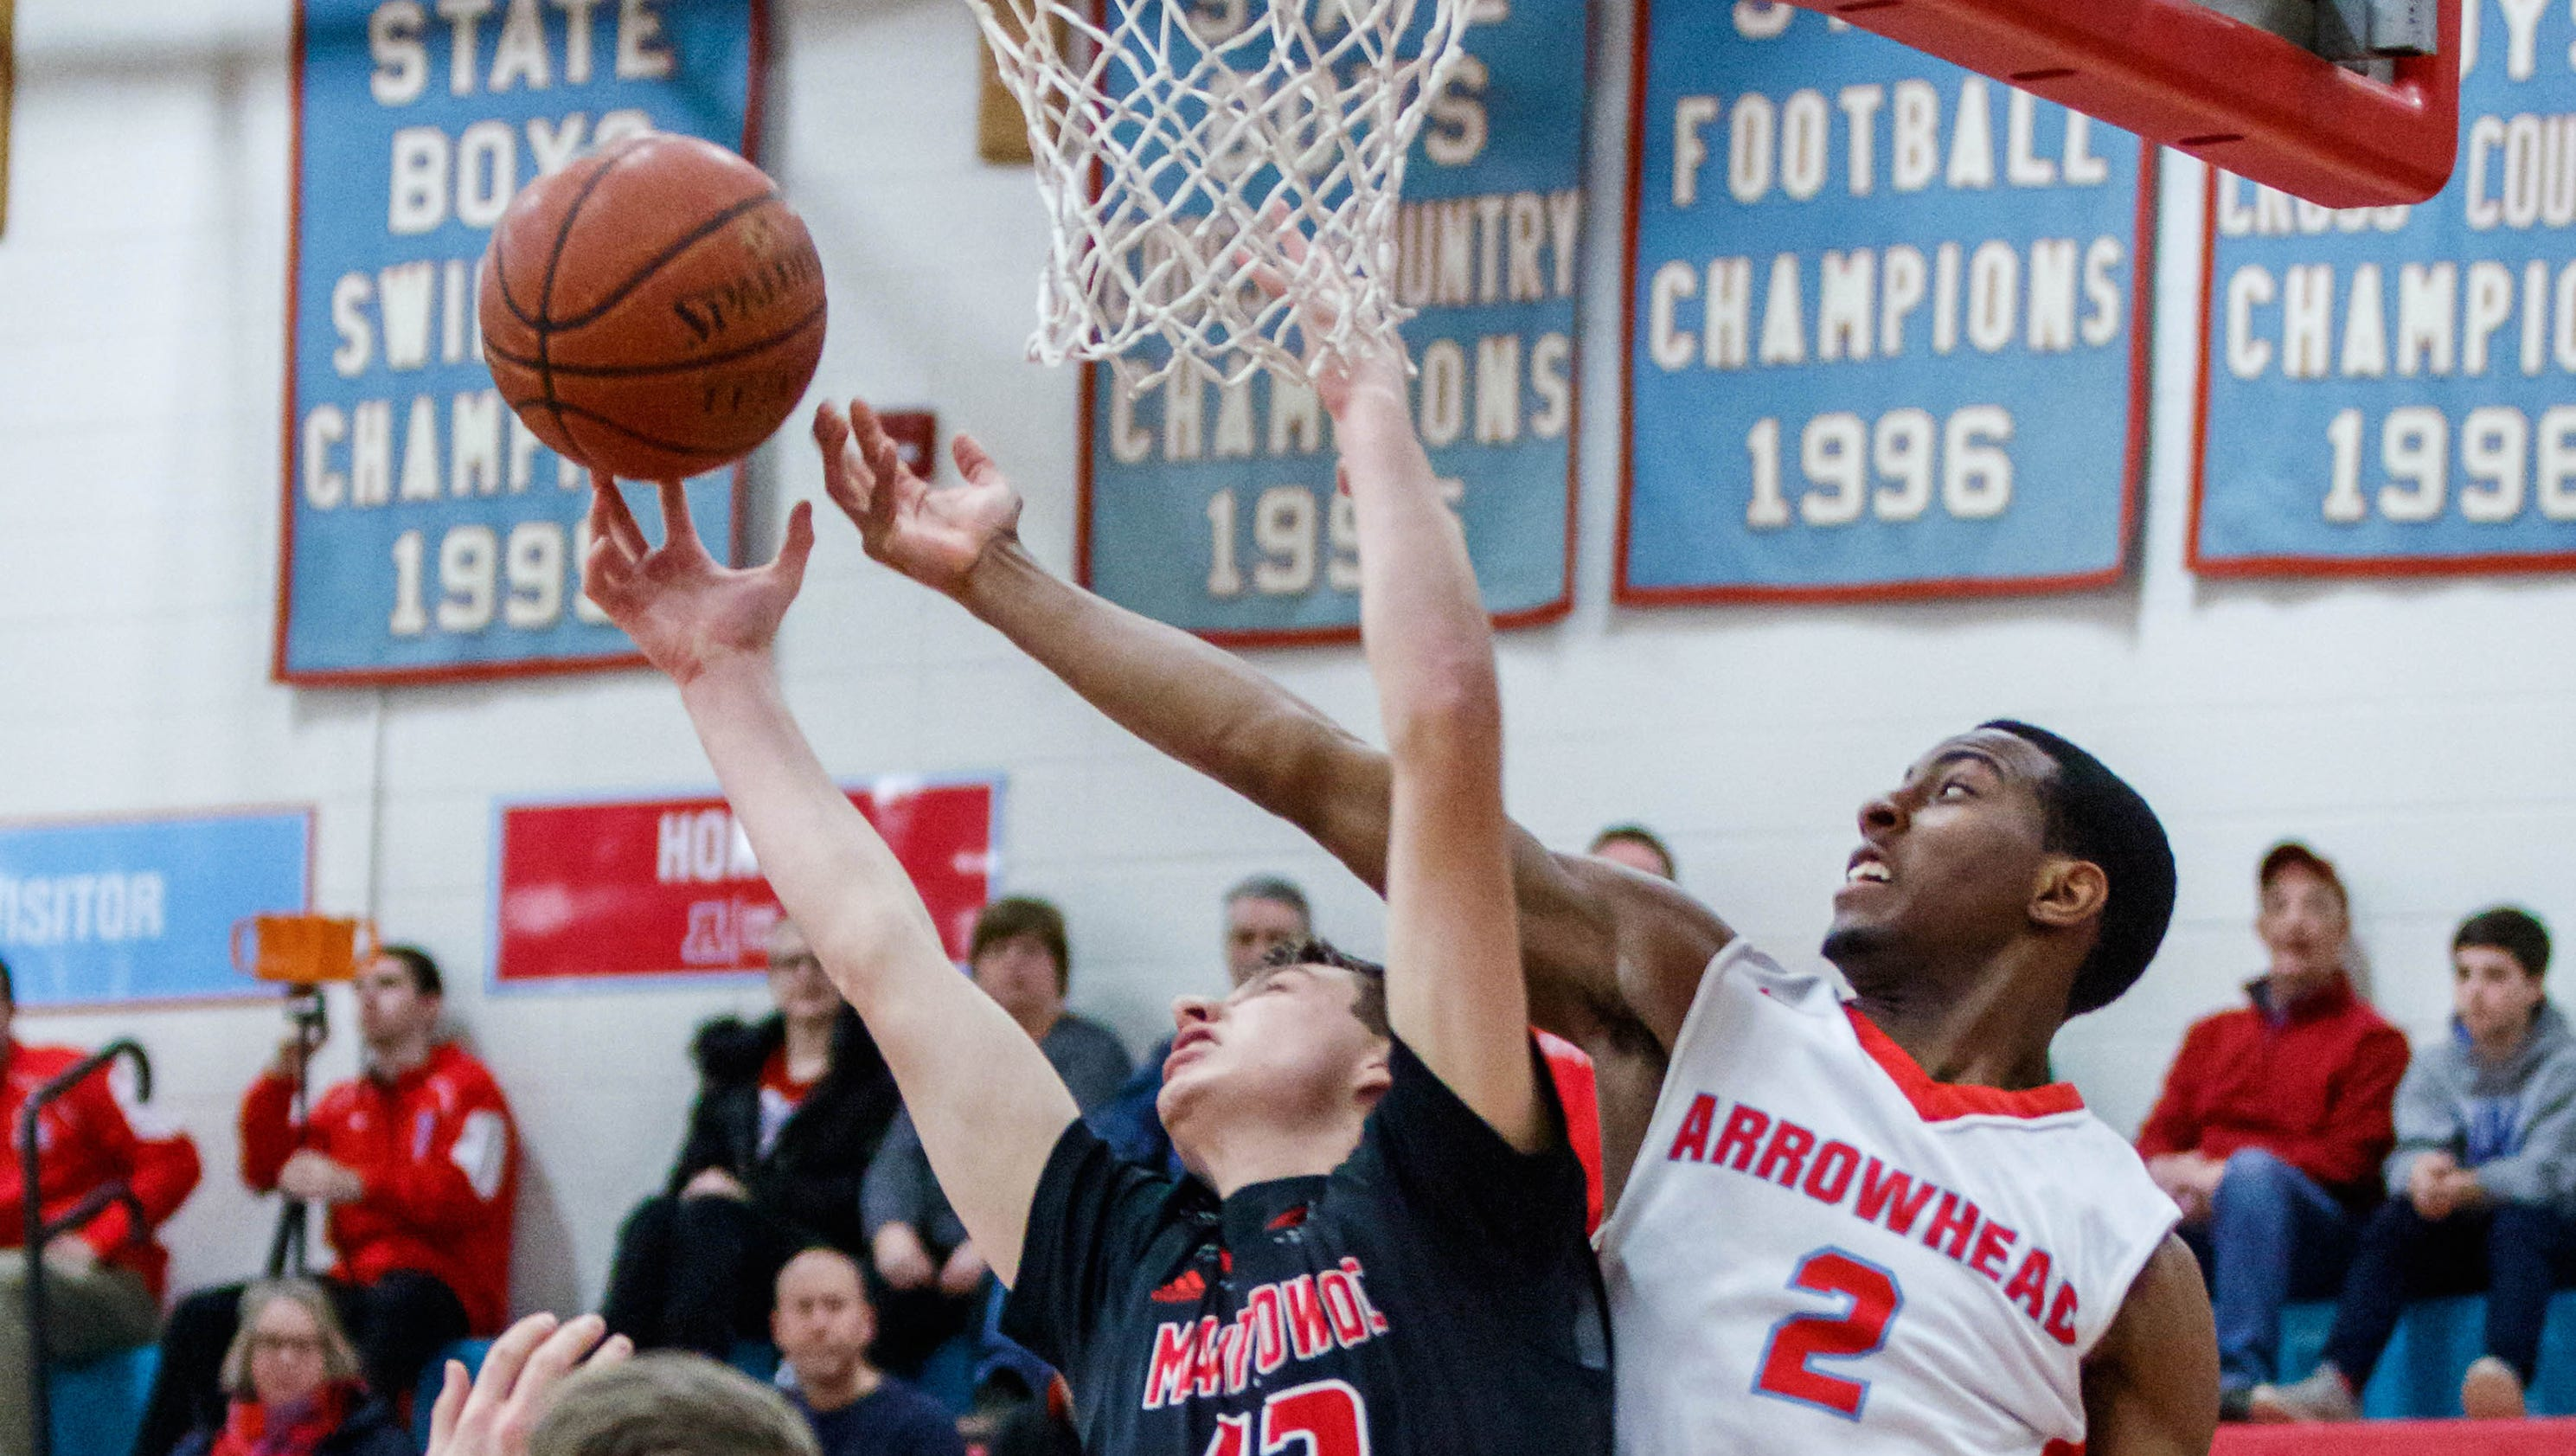 Arrowhead heads north in search of sectional prize